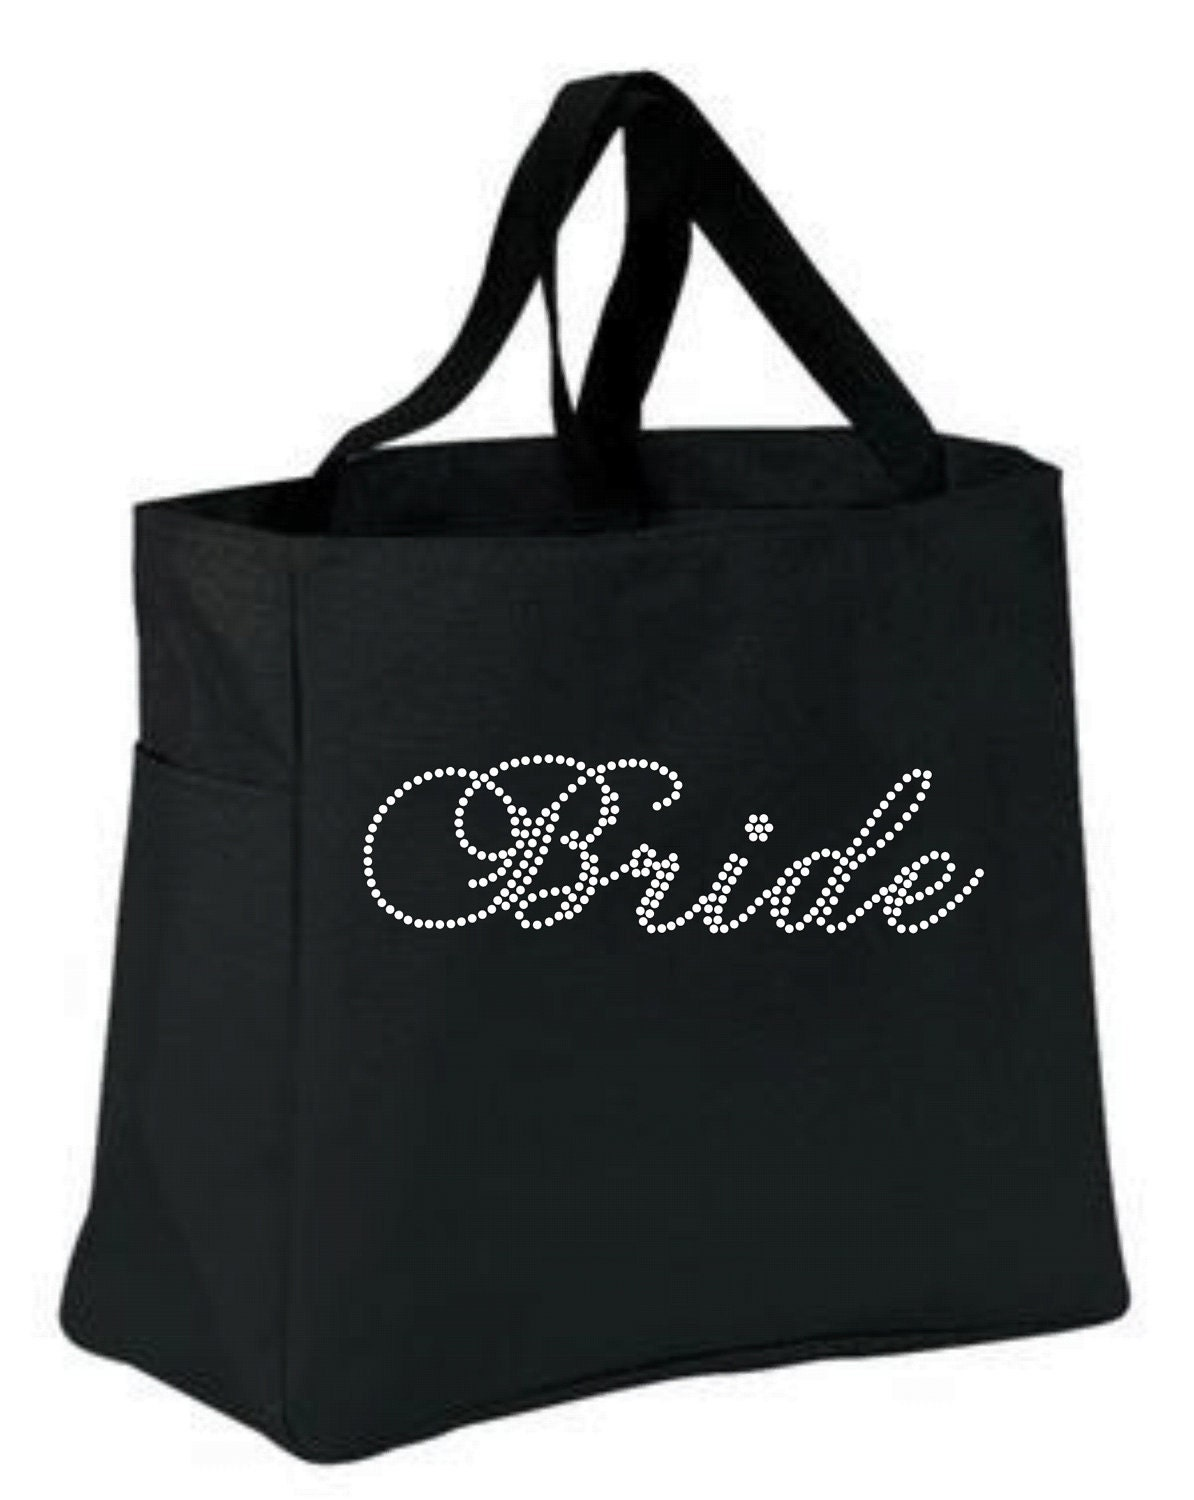 Bride Rhinestone Tote Bag Gift Wedding Party Gift By Kadensdesigns